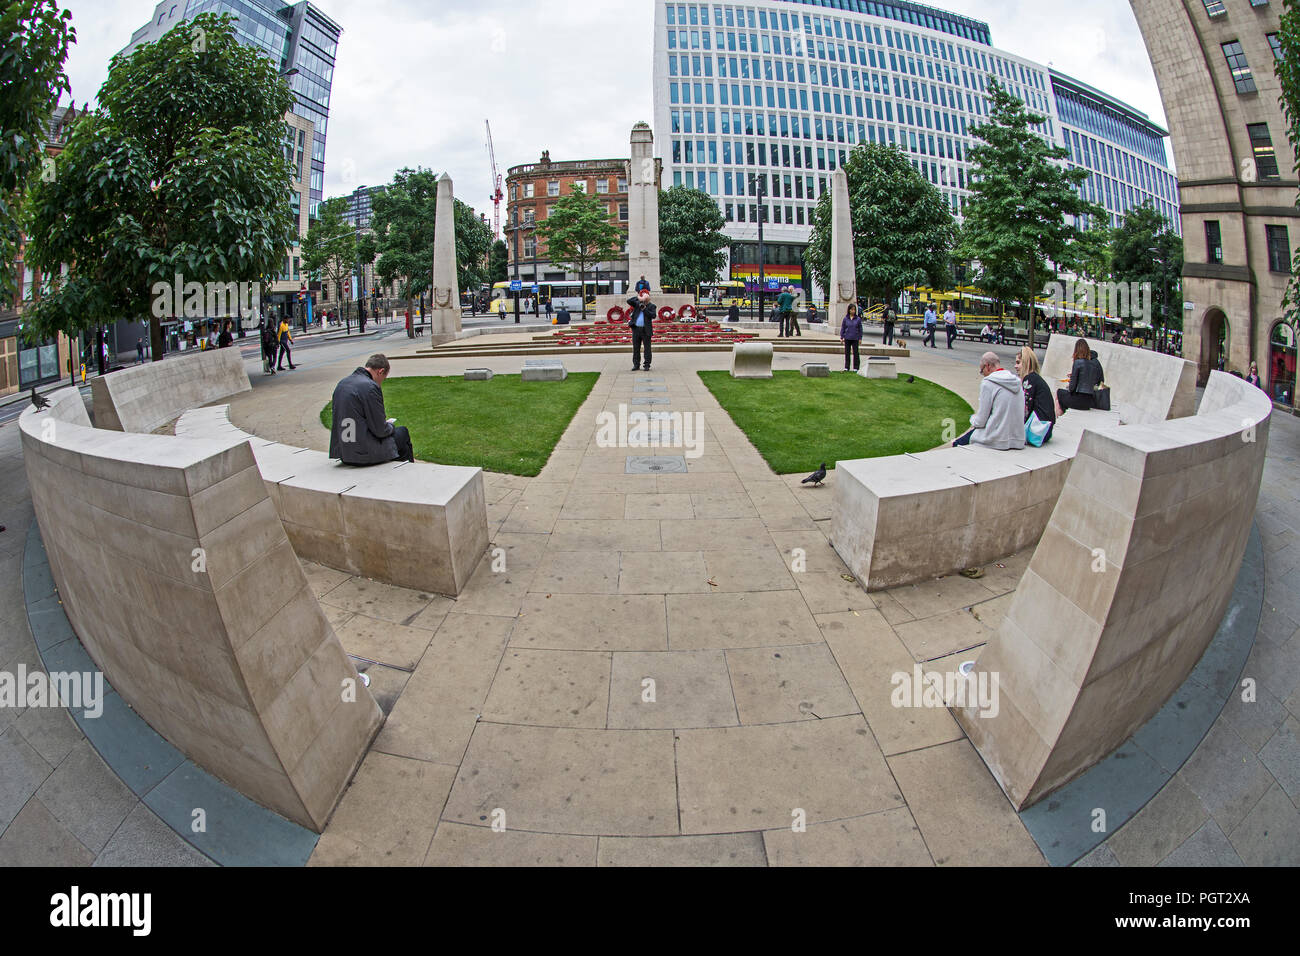 Fish Eye Lens view Manchester war memorial cenotaph St Peters Square Manchester England designed by Sir Edward Luytens moved to present site in 2014 Stock Photo